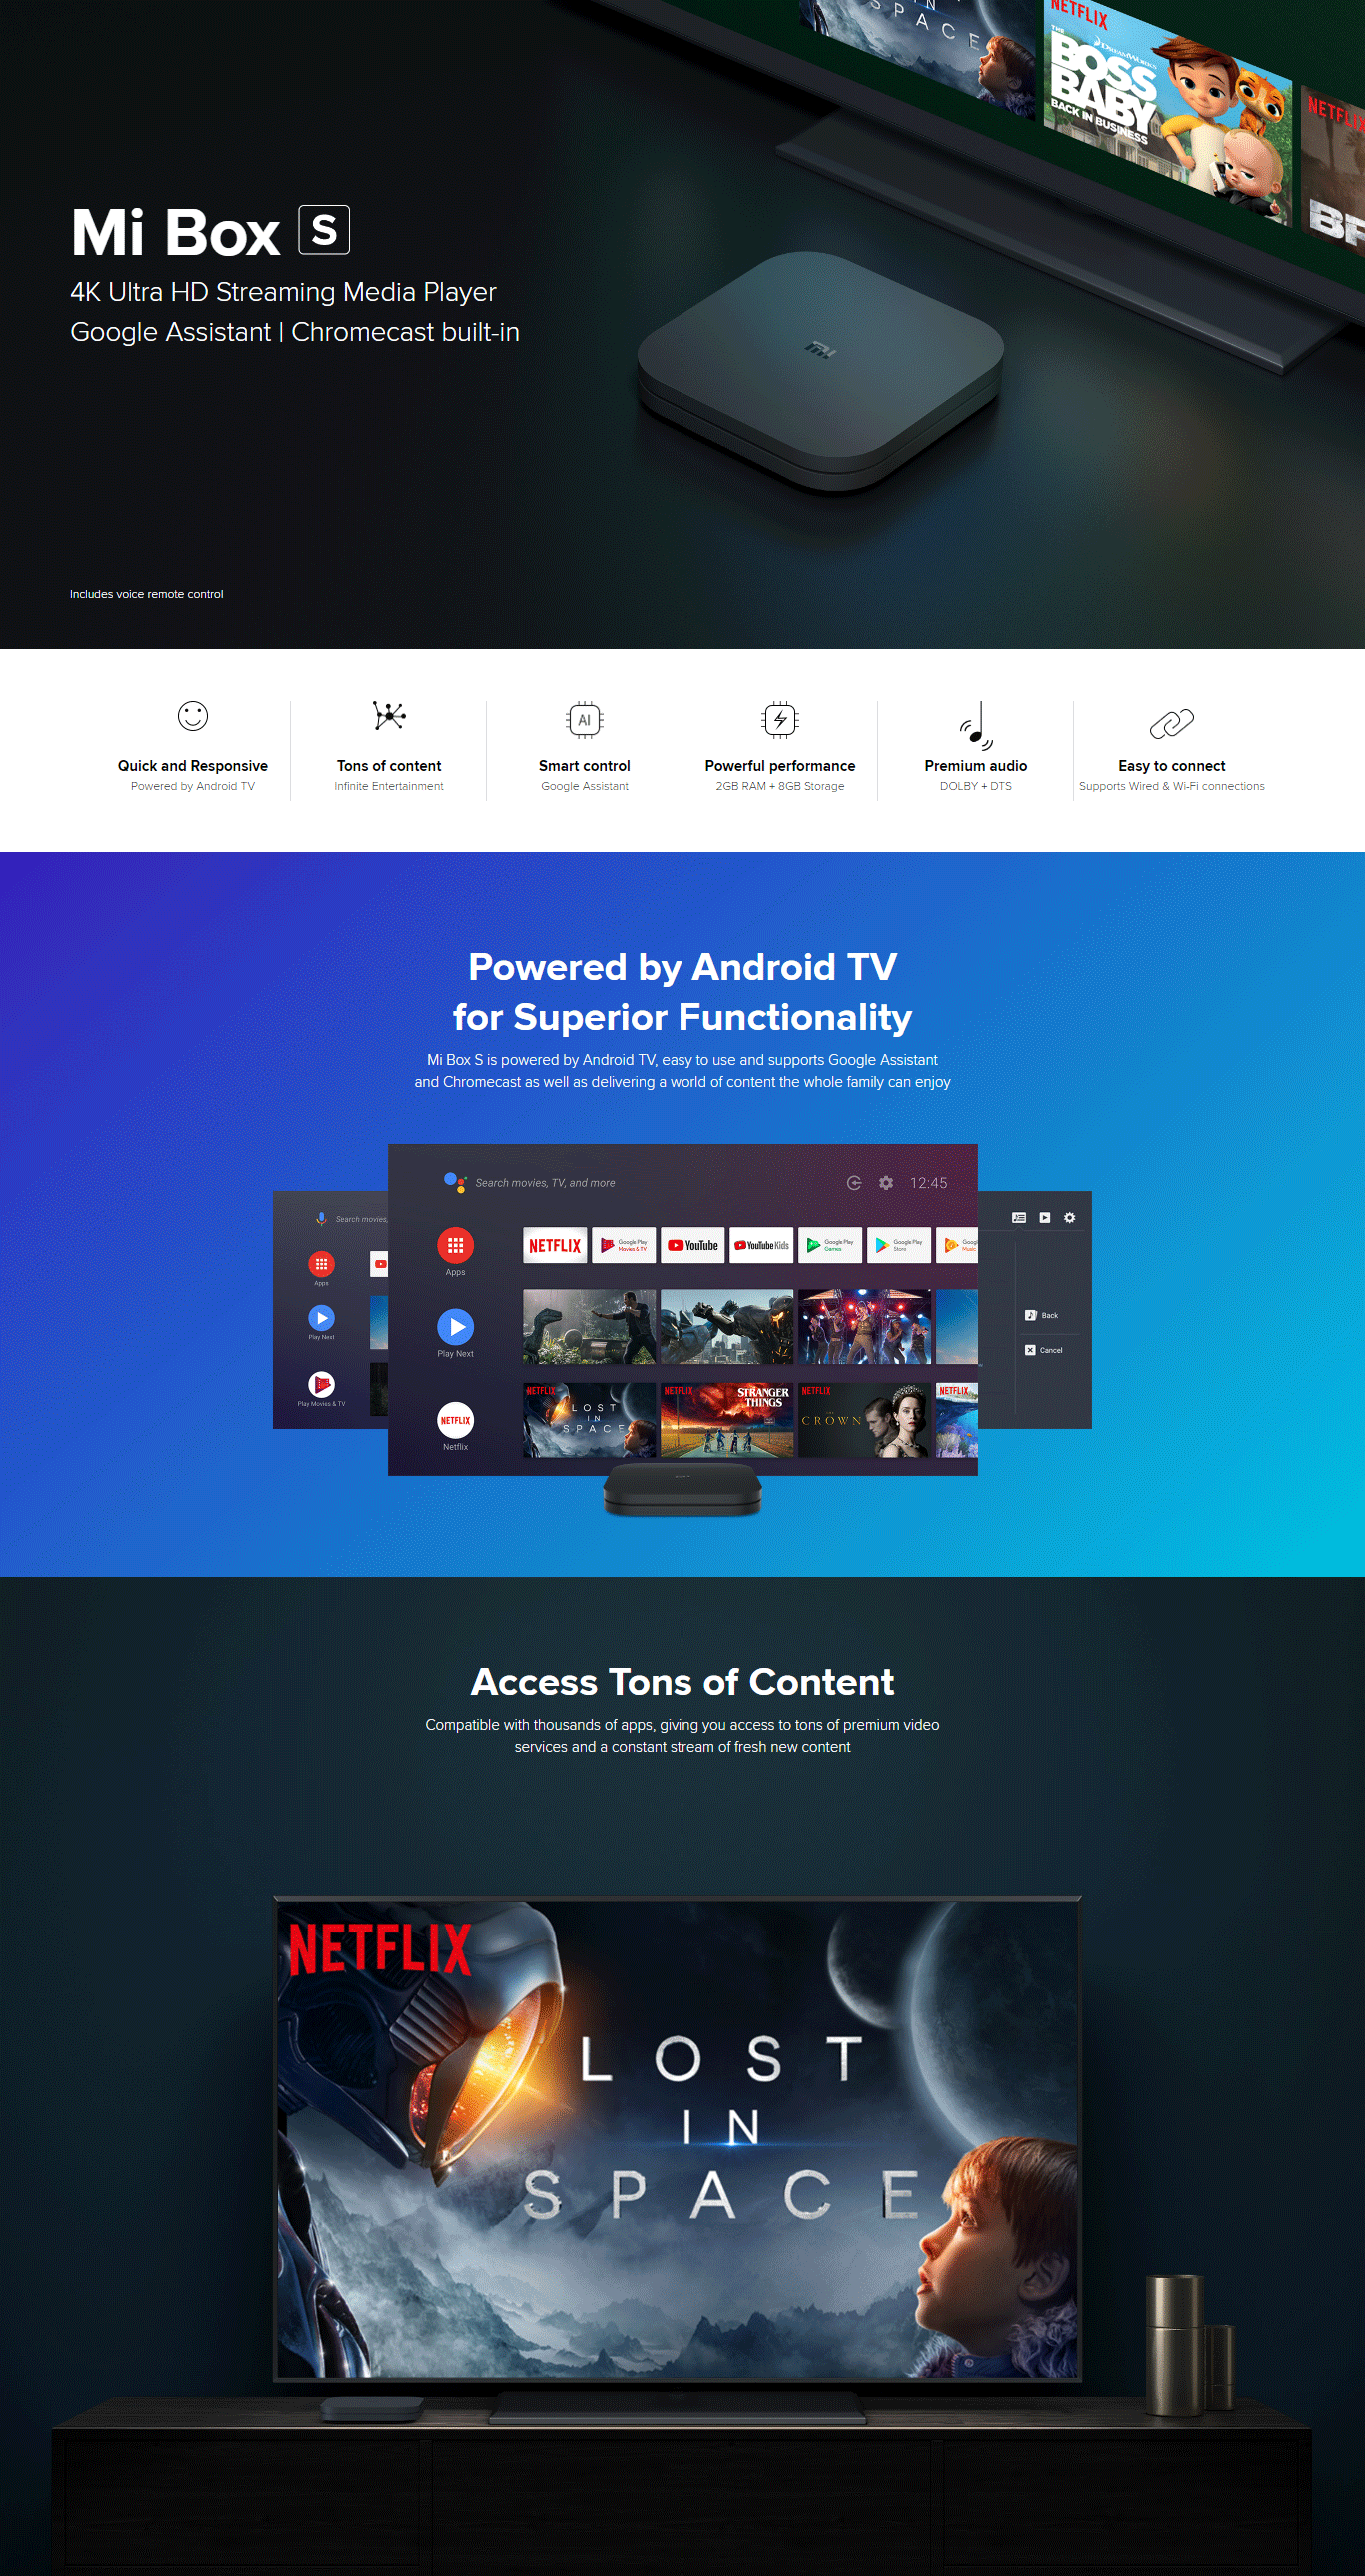 Xiaomi Mi Box S with Google Assistant Remote